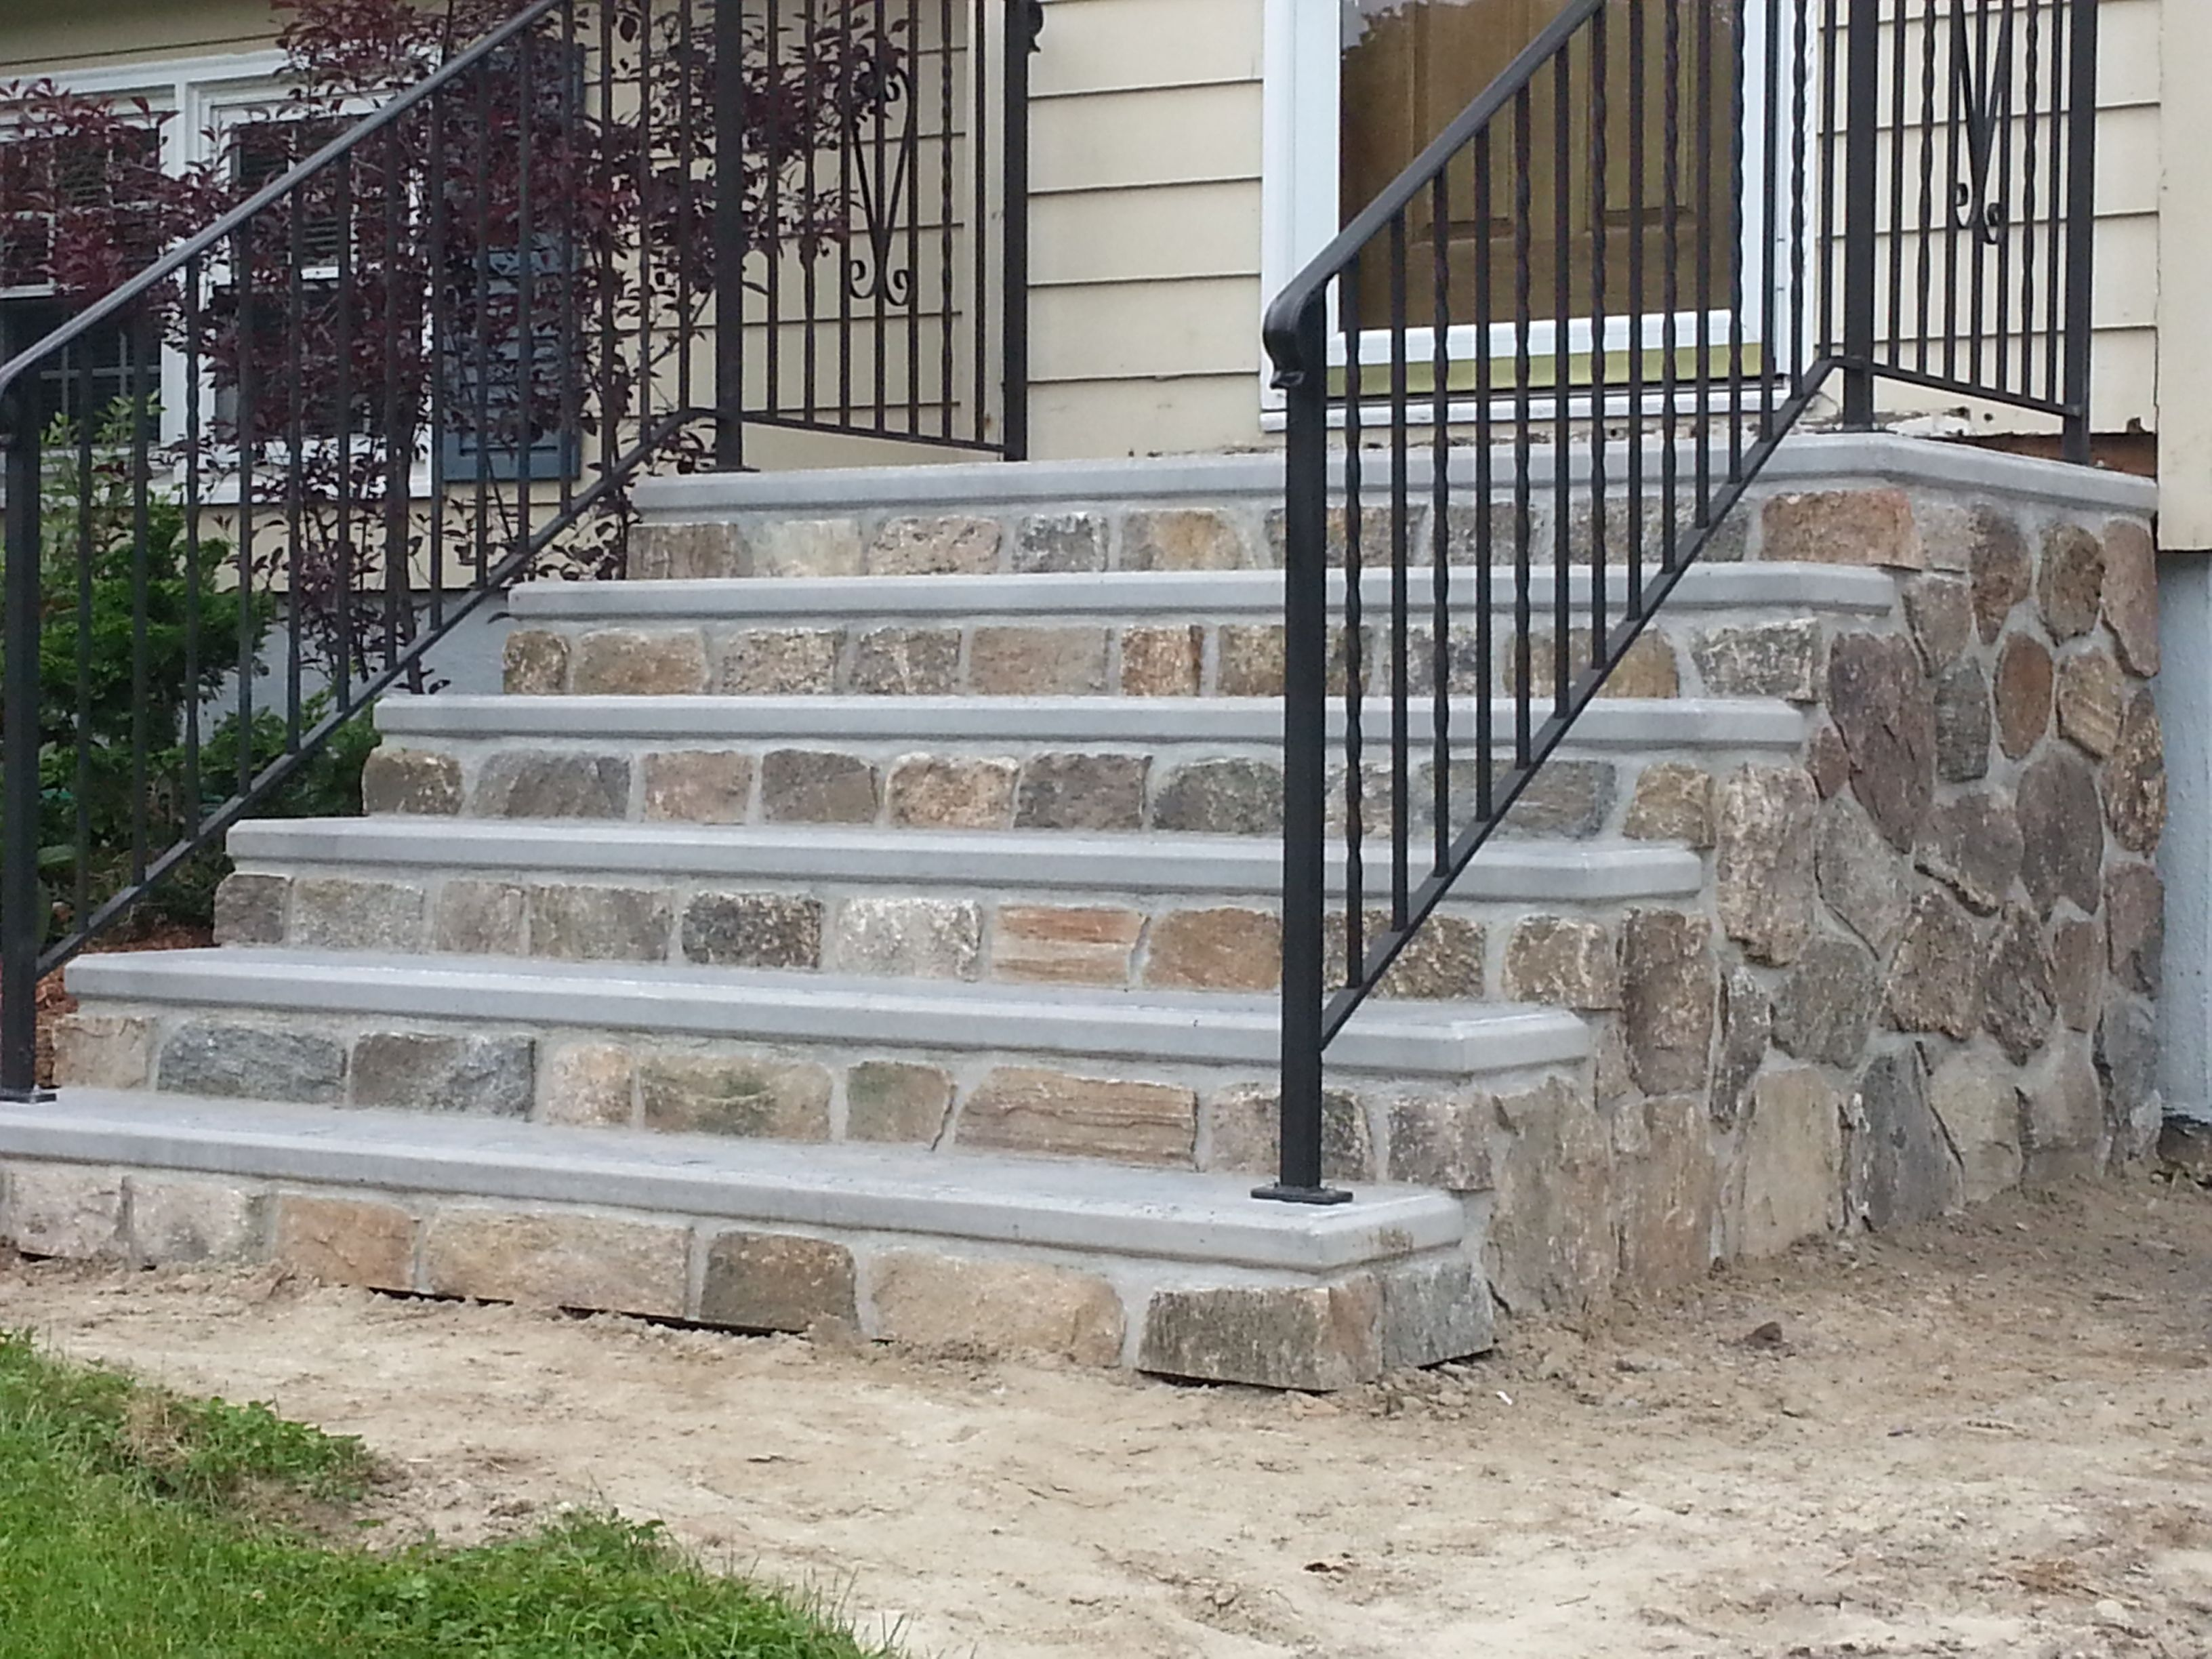 Precast Steps Concrete Products Services Oxford Boston Ma   Premade Steps For Outside   Front Porch   Concrete   Wooden   Precast Concrete Steps   Deck Stairs